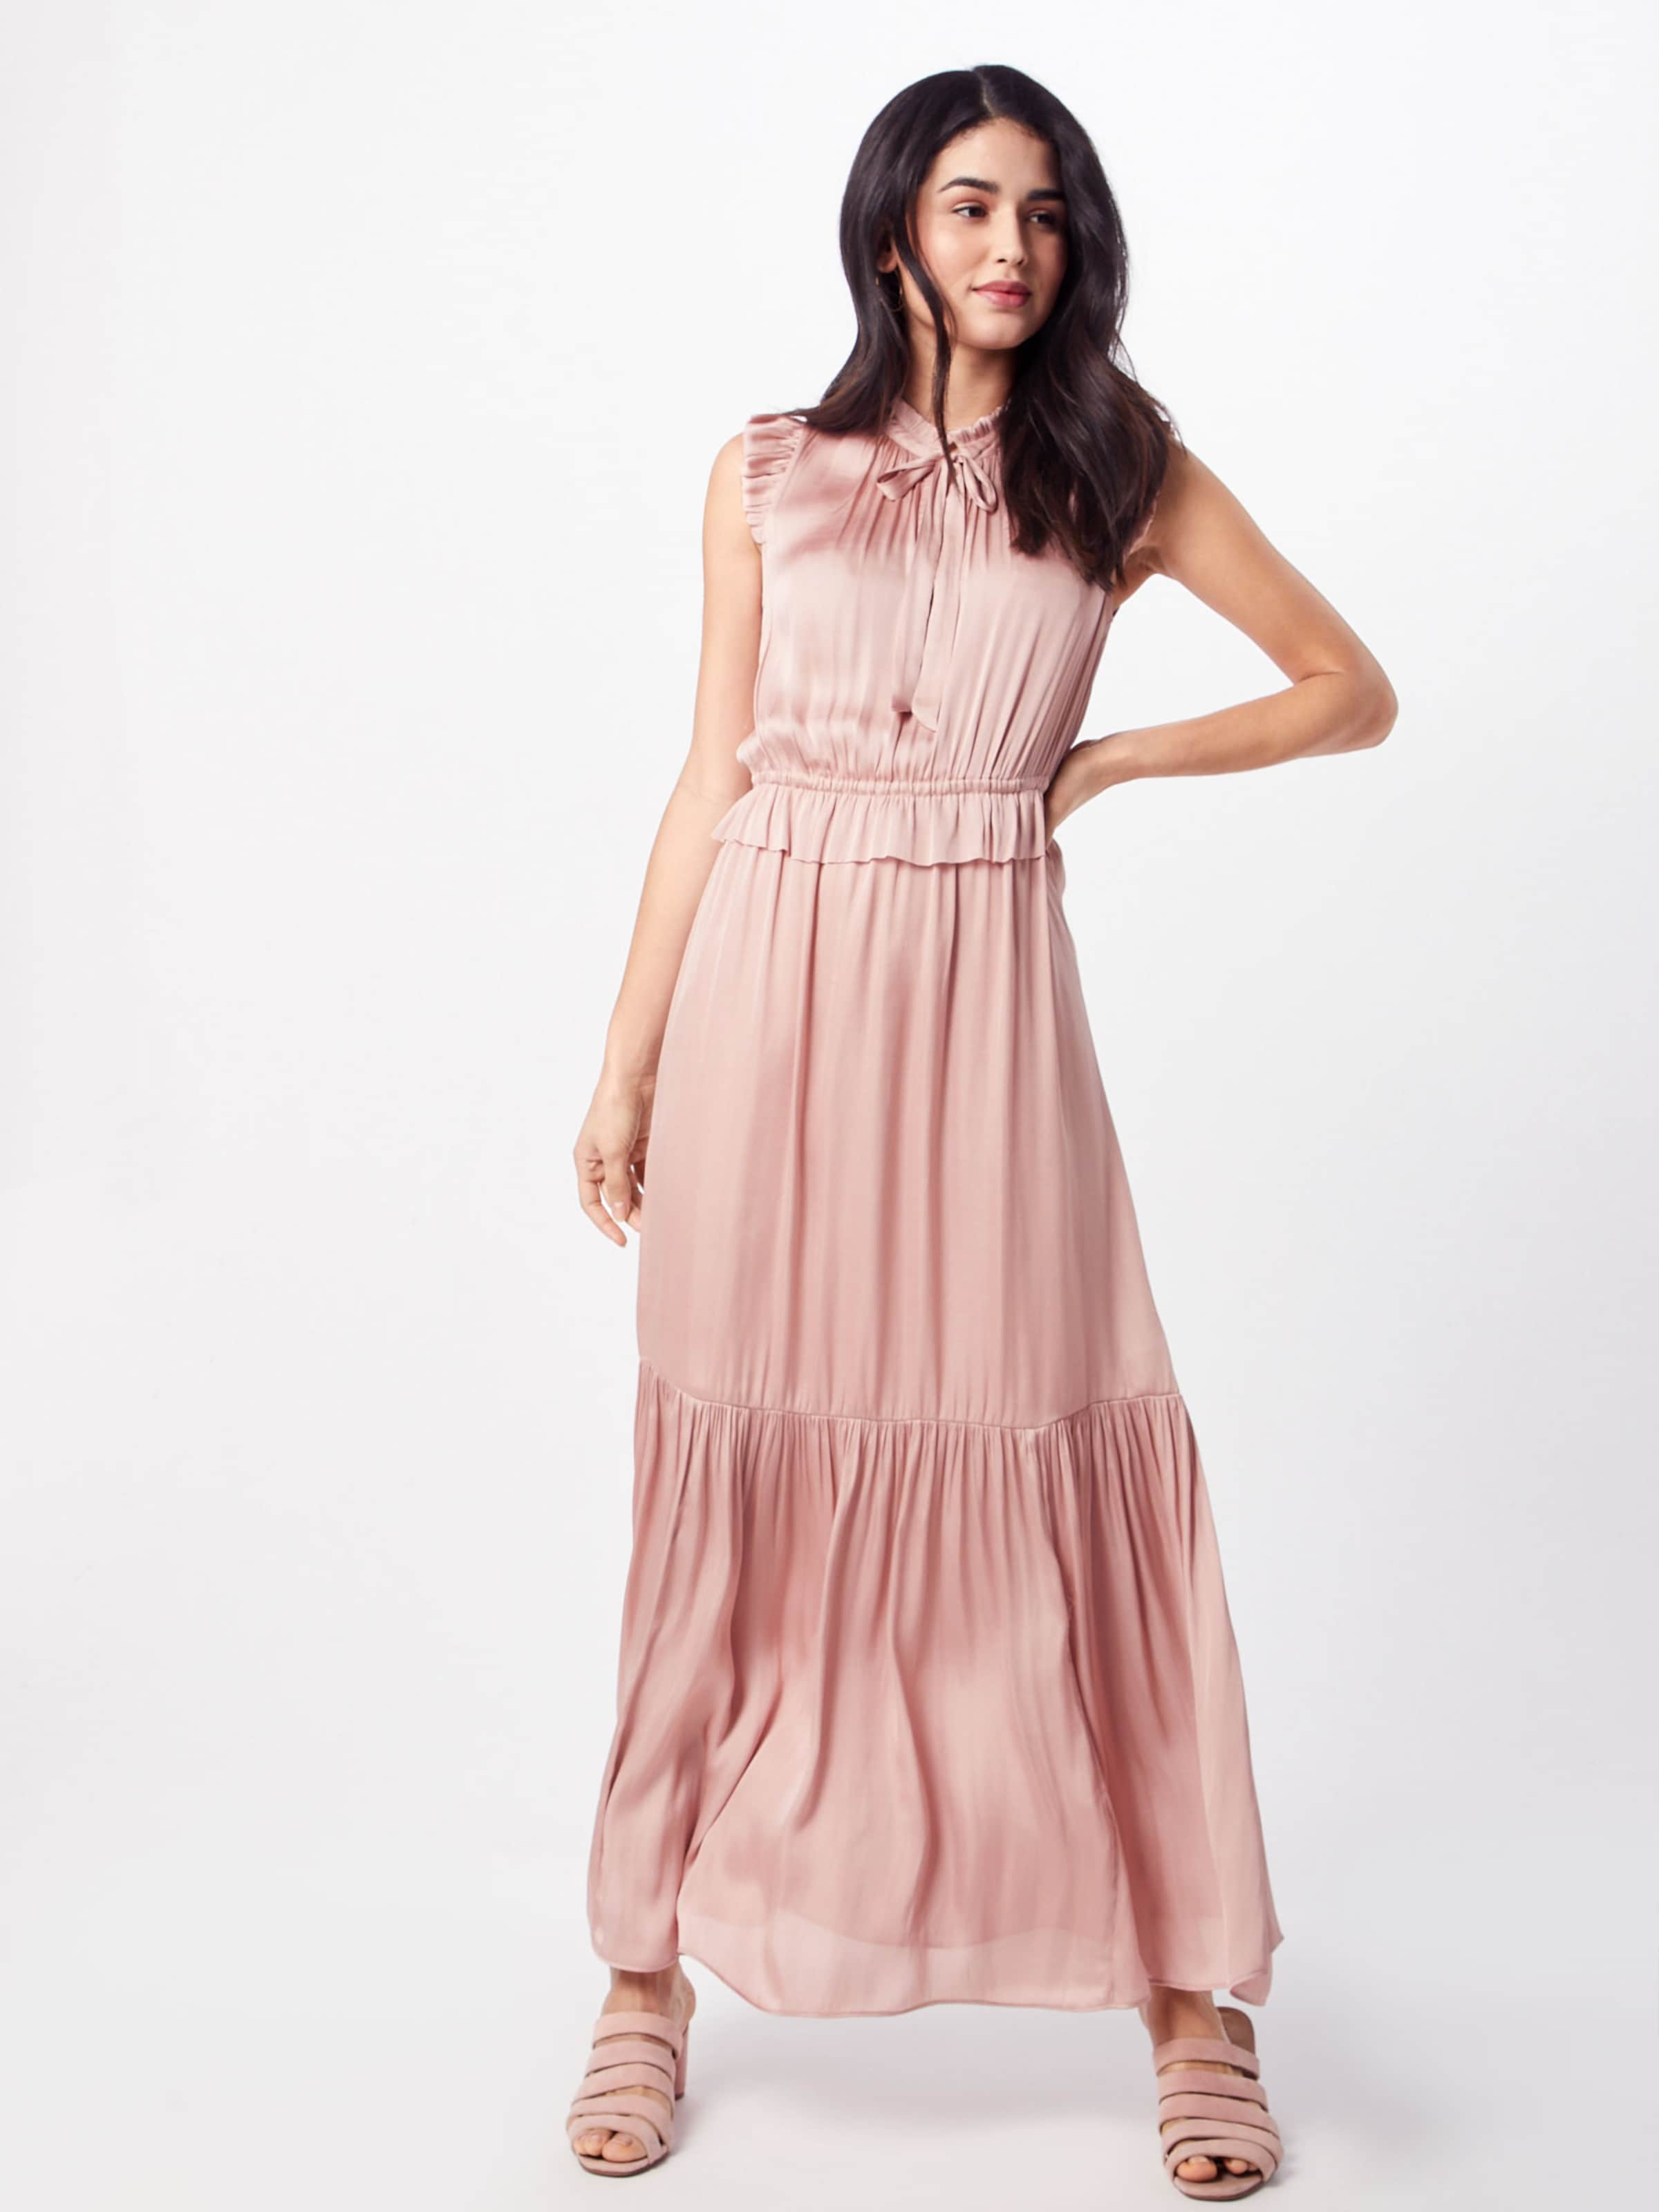 Solid' Kleid Banana In Rosa 'sl Neck Tie Maxi Republic pSLzVGqjUM